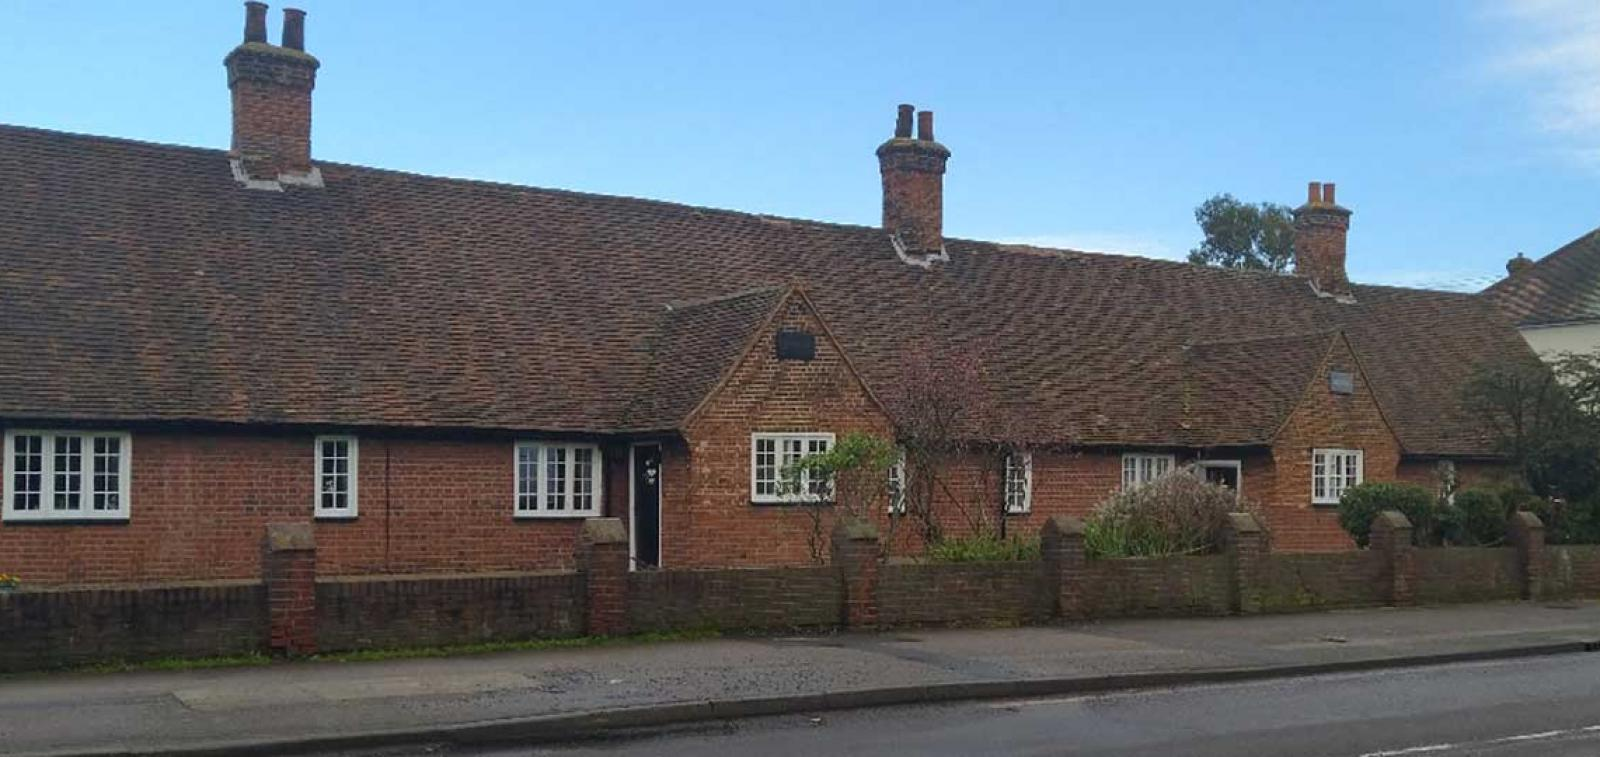 Exterior of Rochford Almshouses